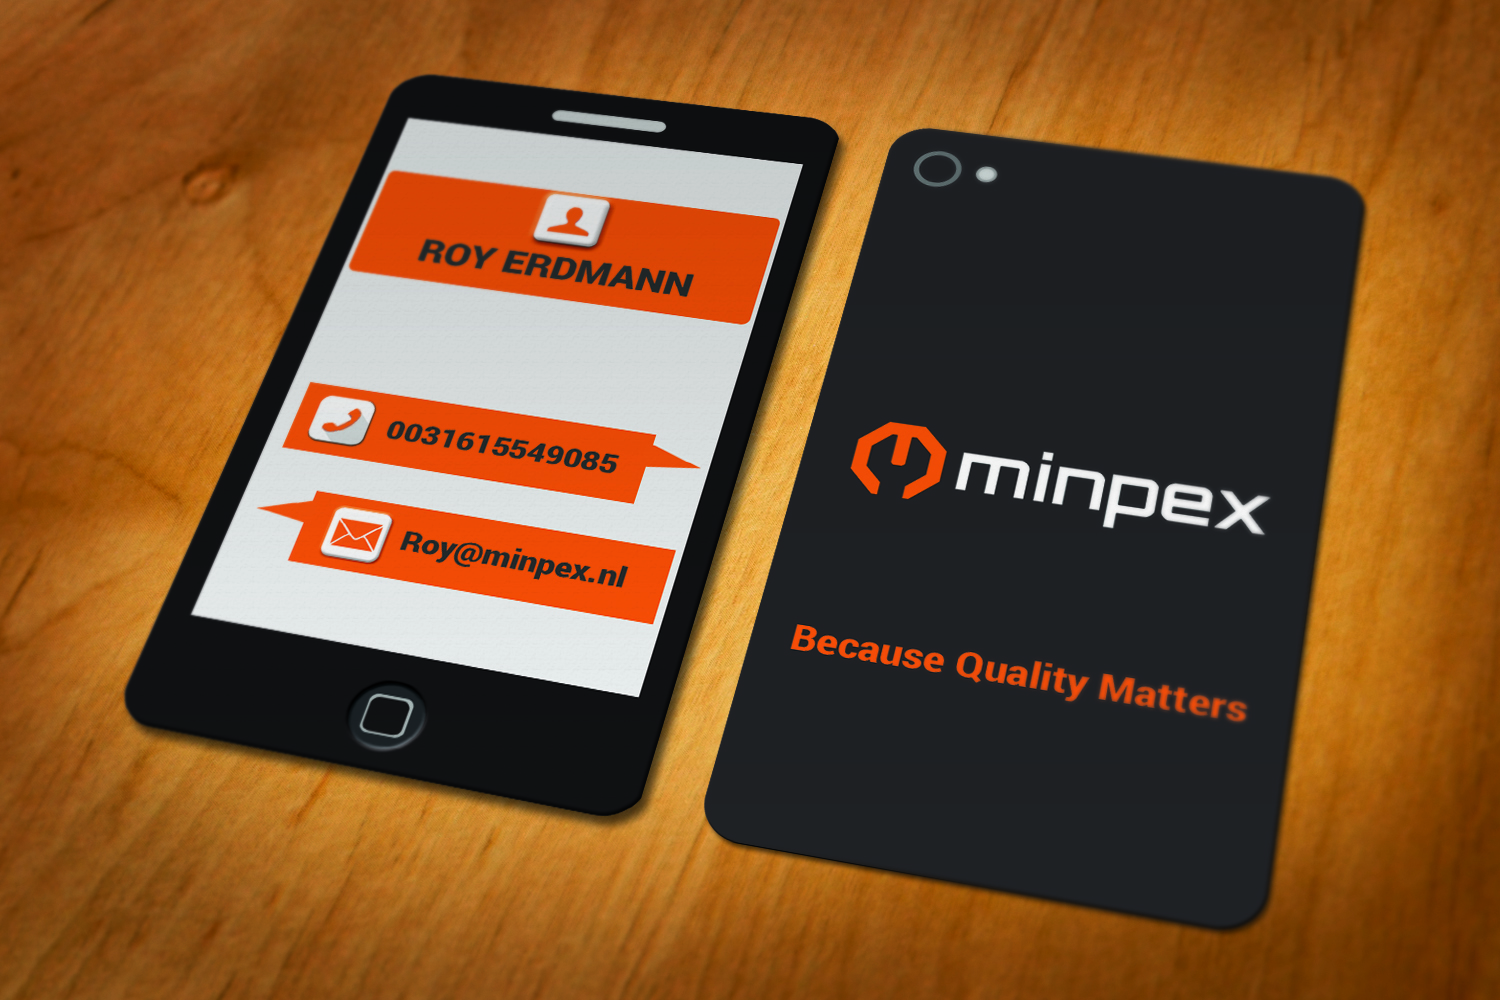 Elegant playful business business card design for minpex bv by business card design by momoothoi for minpex bv design 14487864 colourmoves